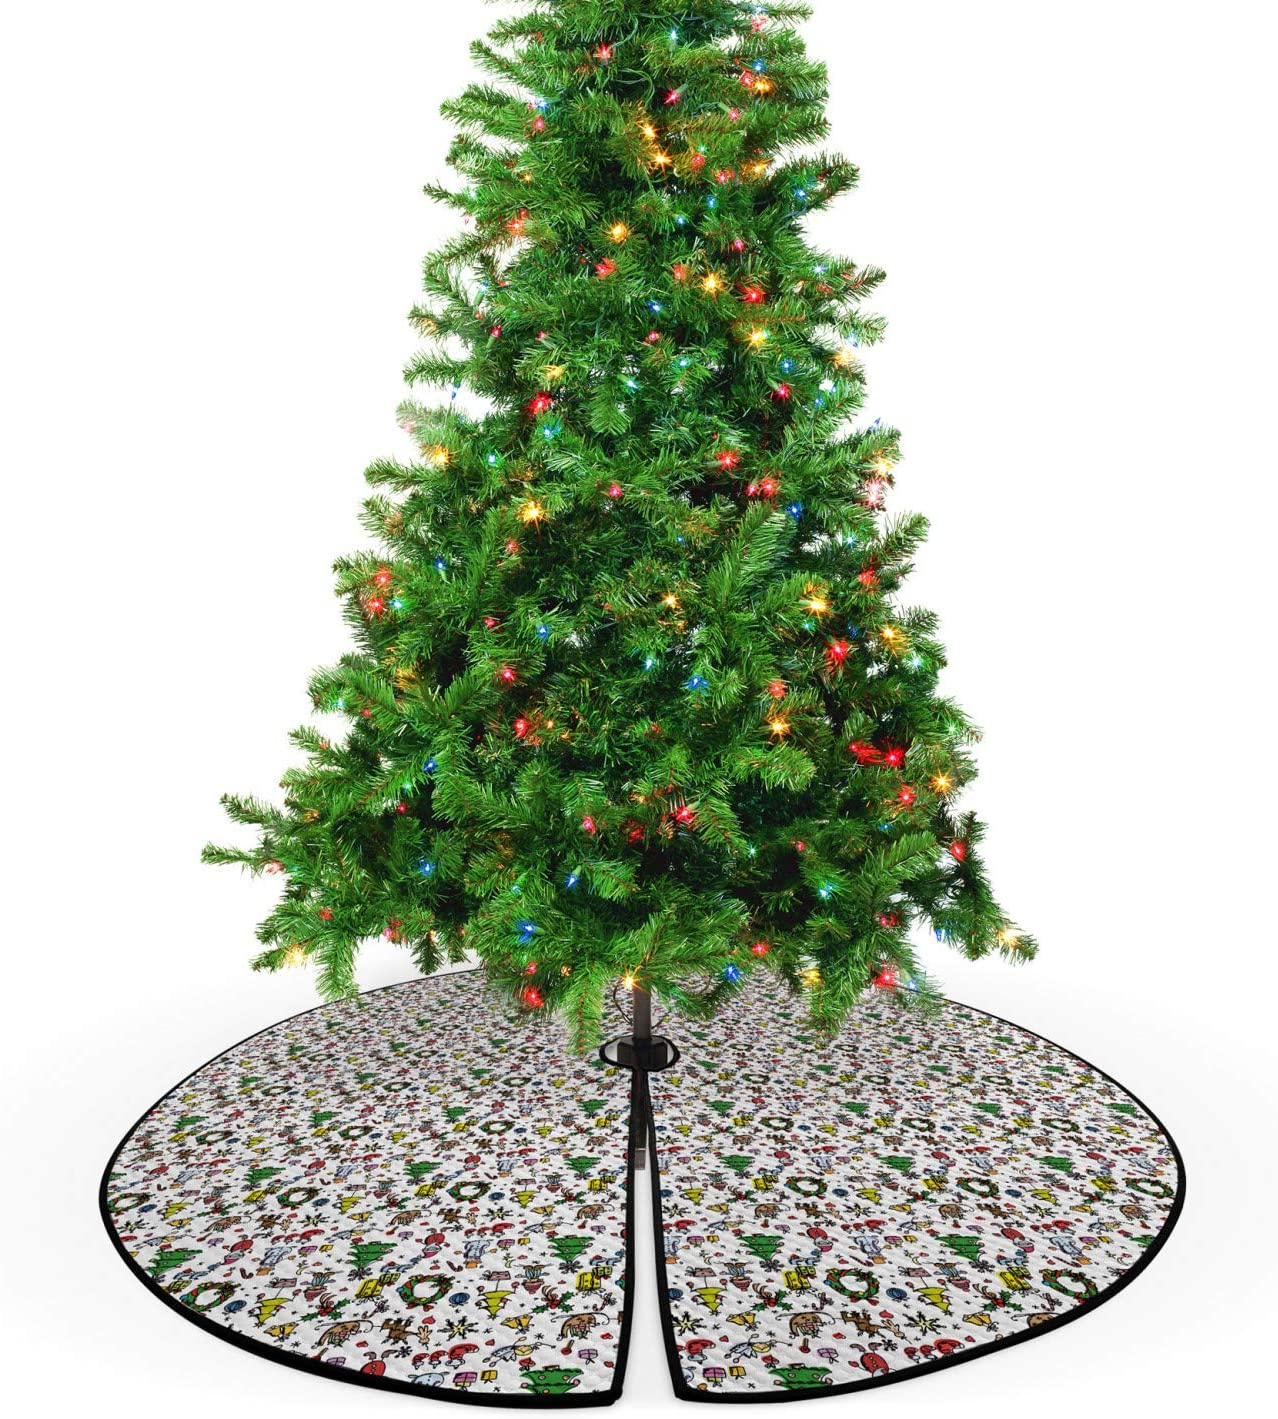 Amazon Com Ambesonne Nursery Christmas Tree Skirt Christmas Concepts Drawn In Cartoon Style Santa Snowman Children Presents Mistletoe Decorative Quilted Mat Seasonal Holiday Decoration 53 5 Multicolor Home Kitchen Find images of cartoon tree. ambesonne nursery christmas tree skirt